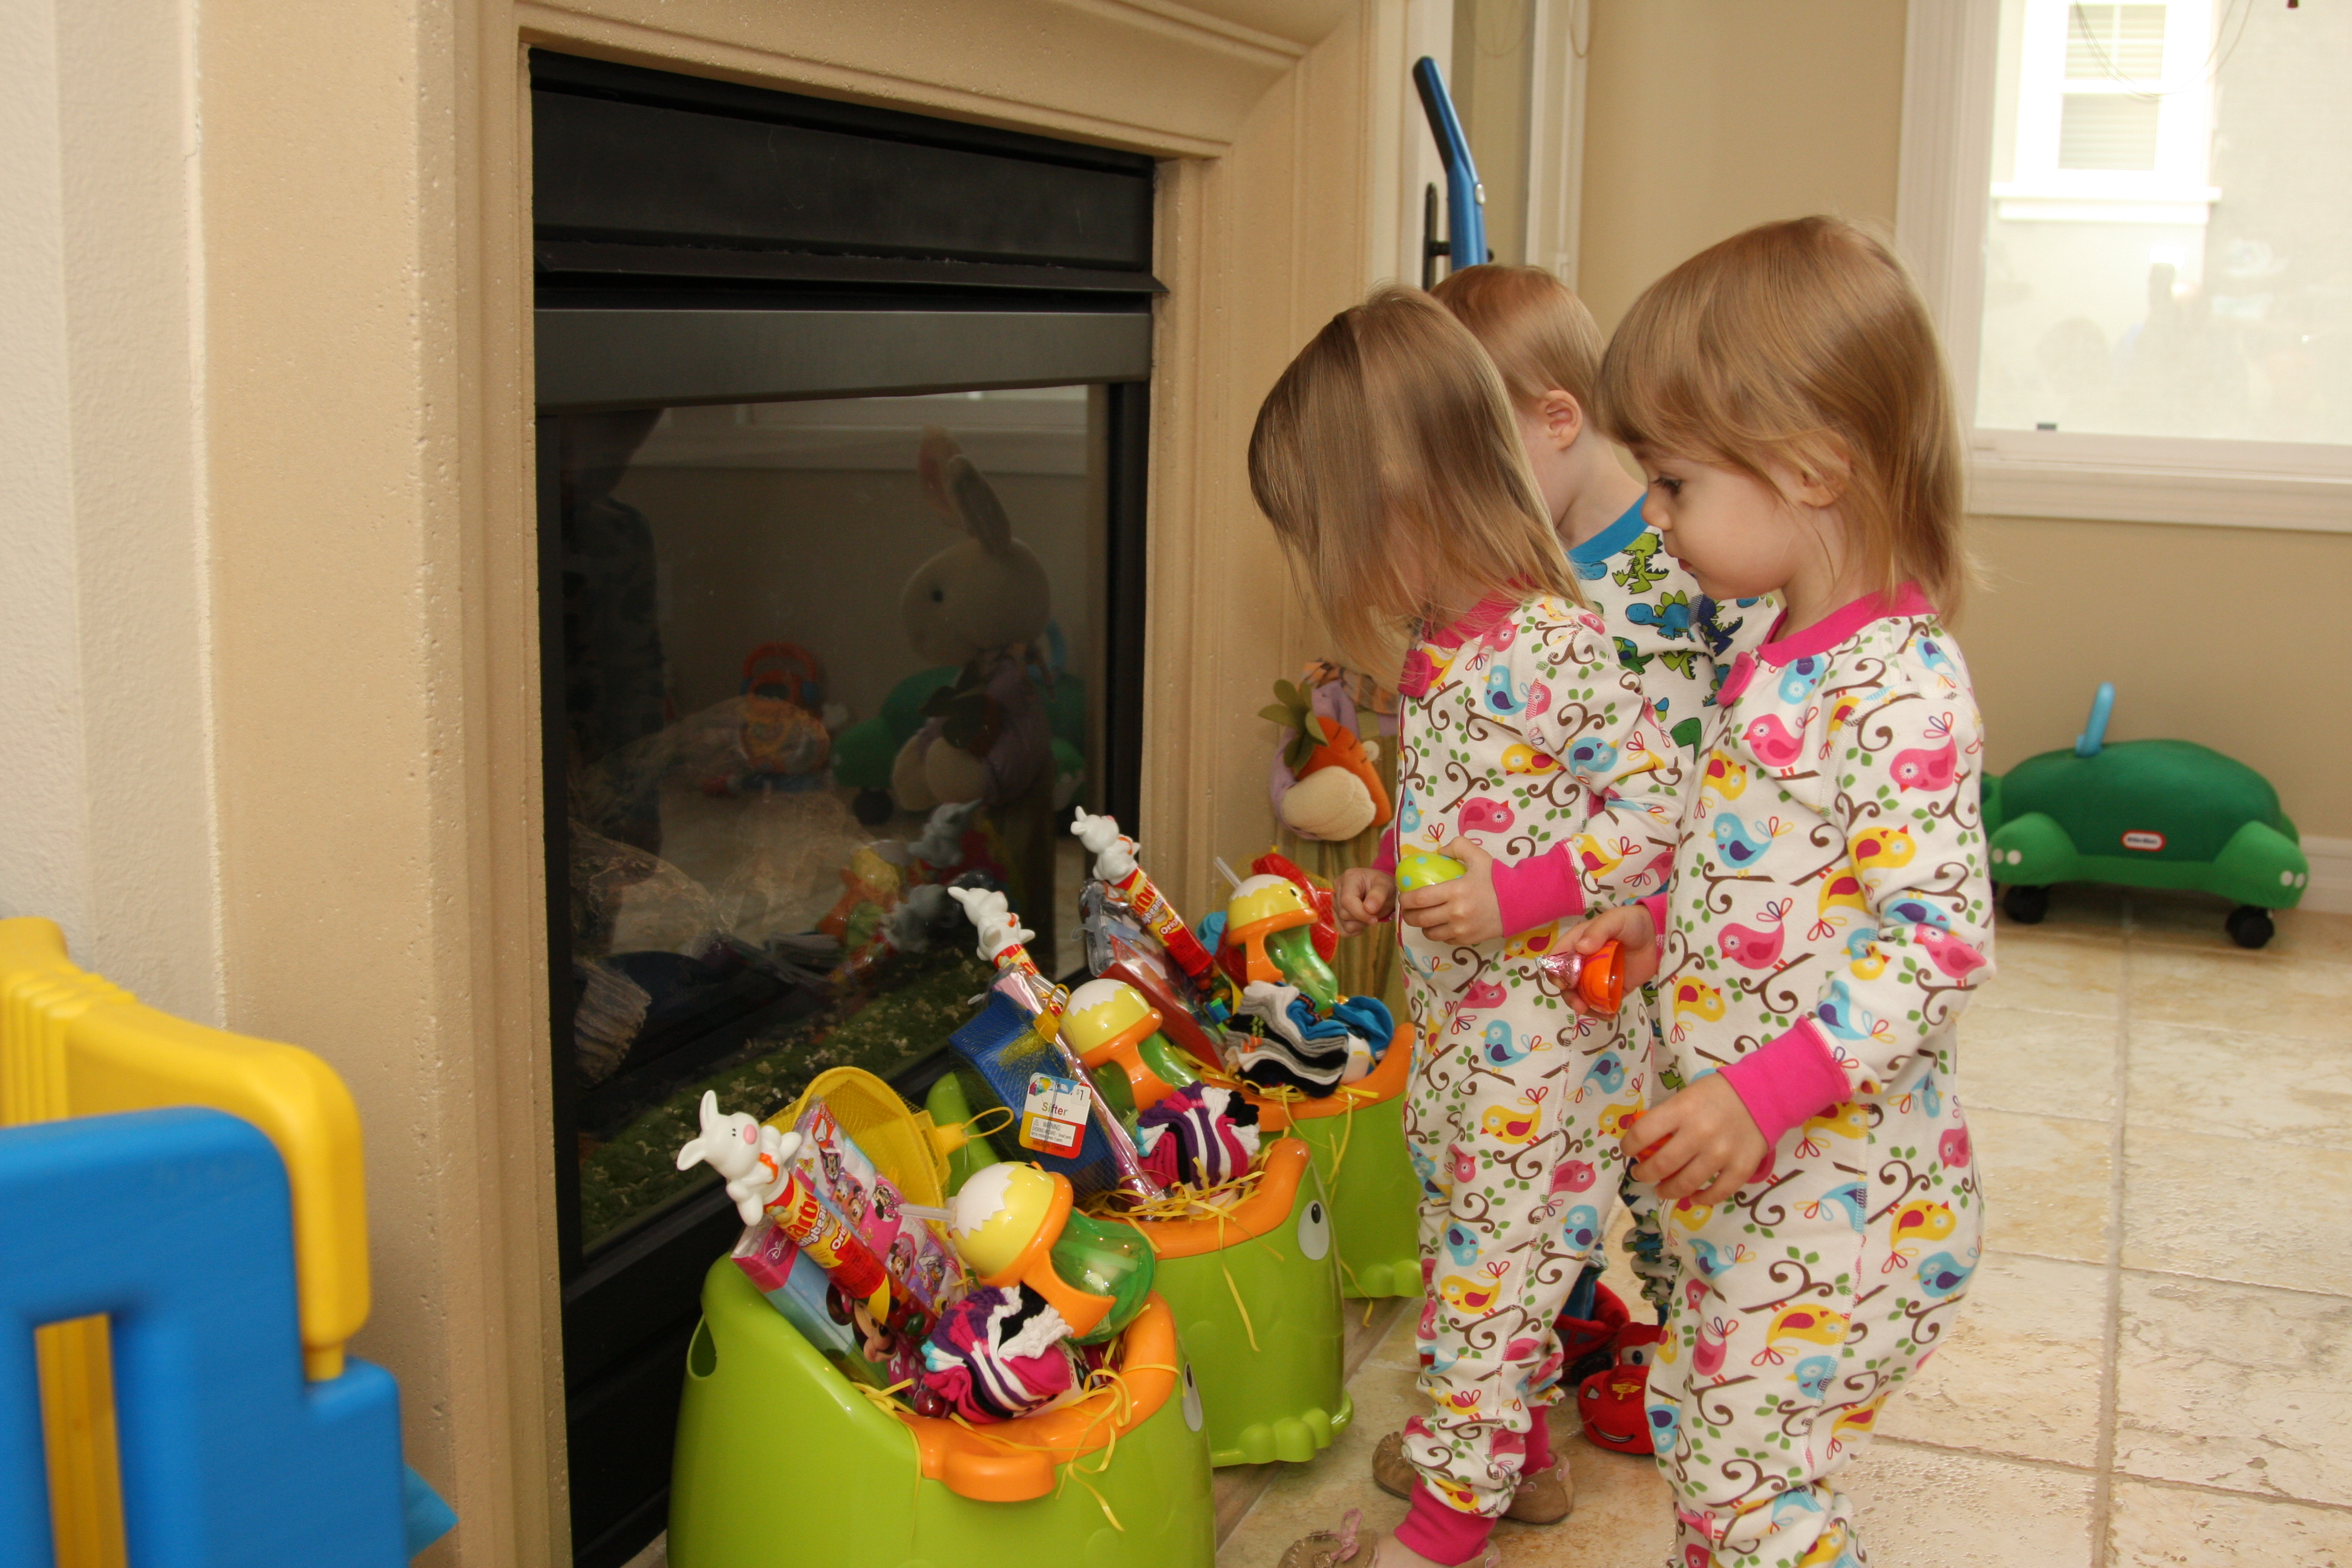 Make your own umbrella easter baskets non candy centered allergy potty training easter baskets negle Choice Image